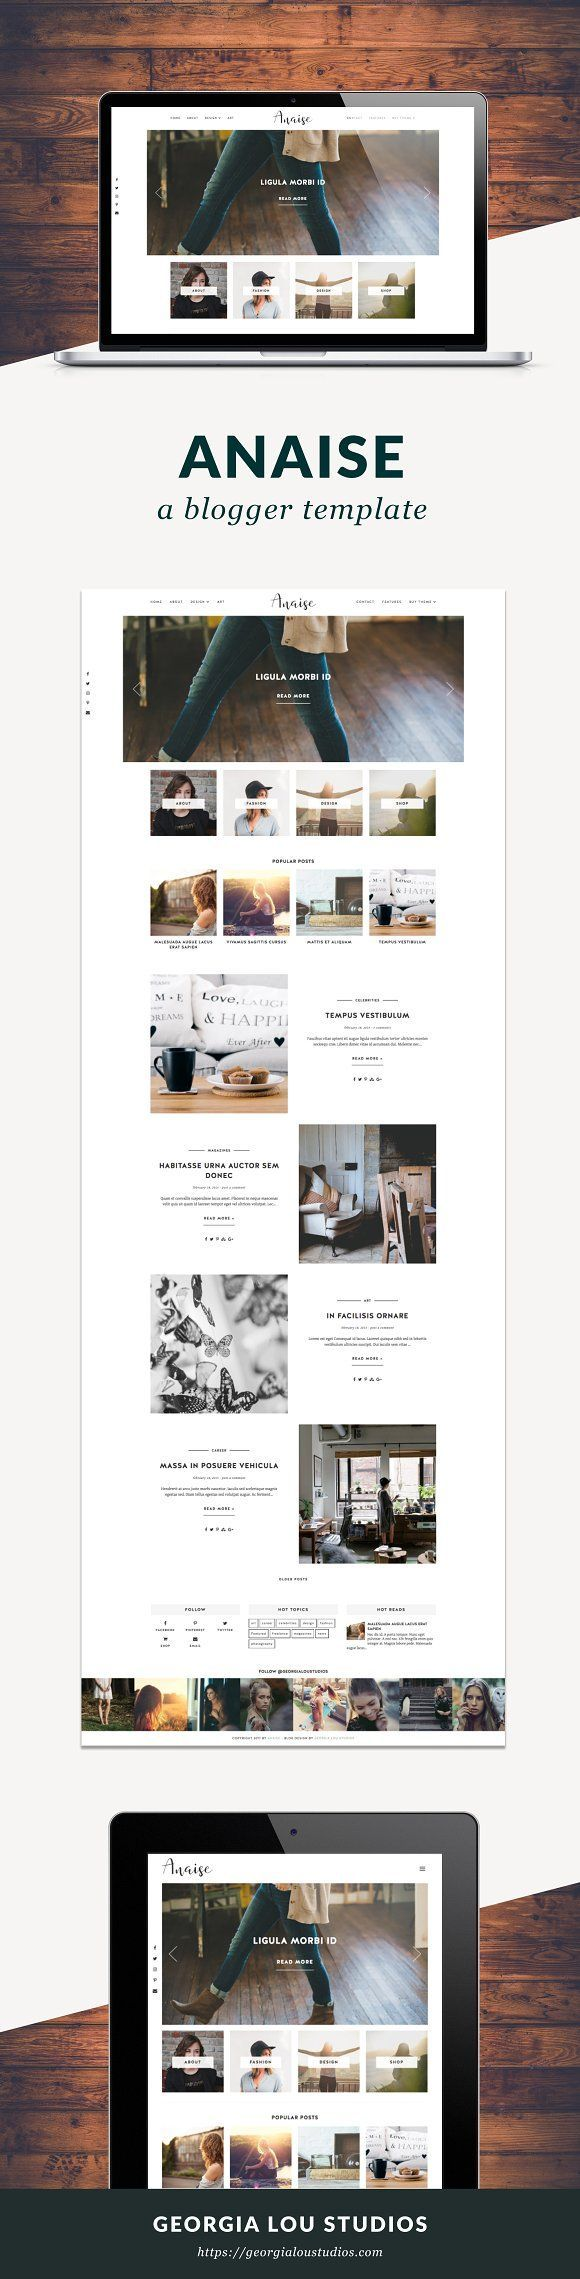 52 best Feminine Blogger templates images on Pinterest | Feminin ...